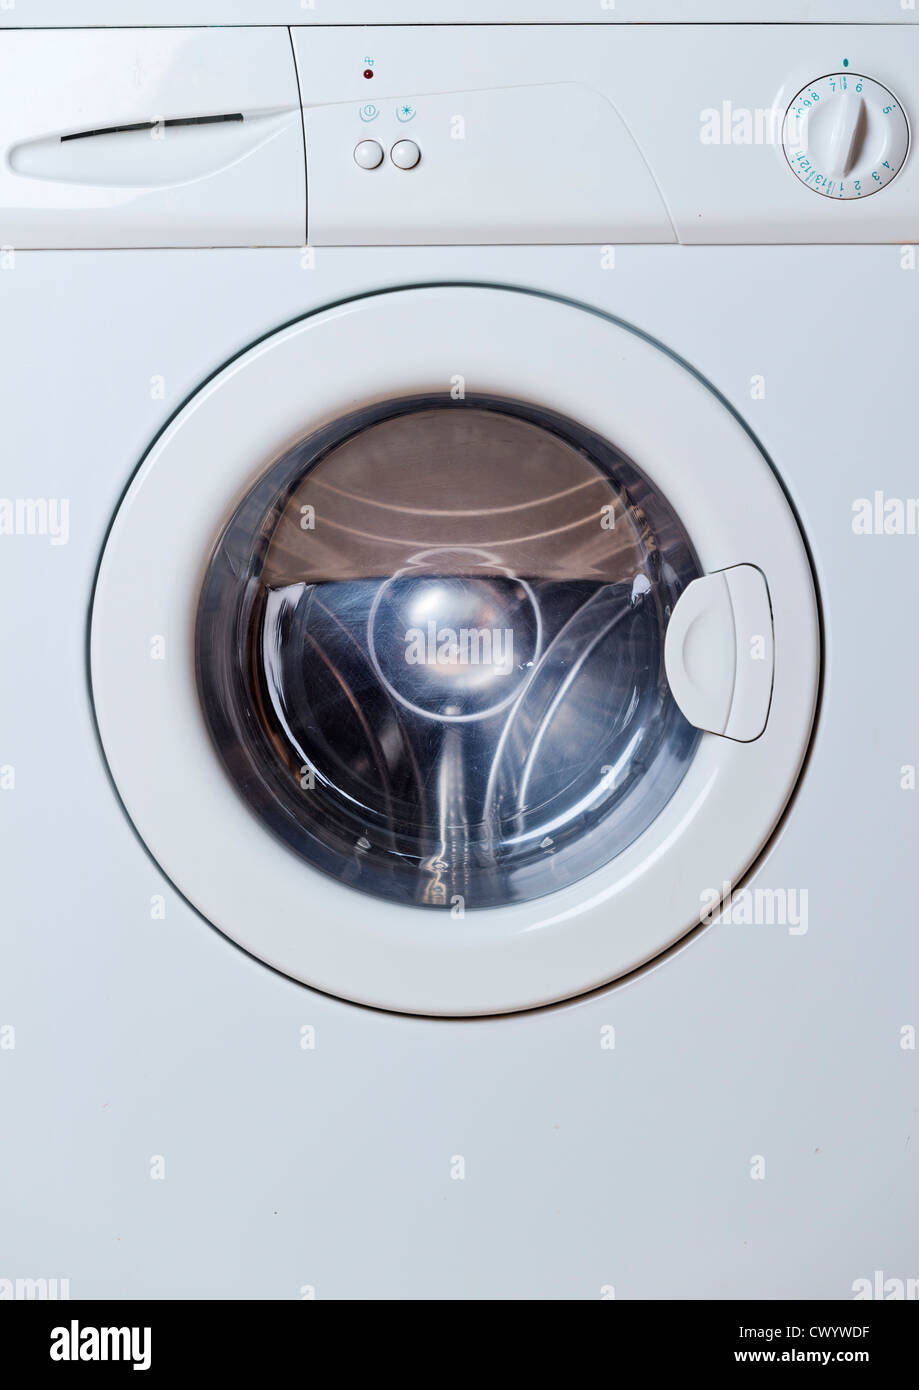 A front loading washing machine. - Stock Image